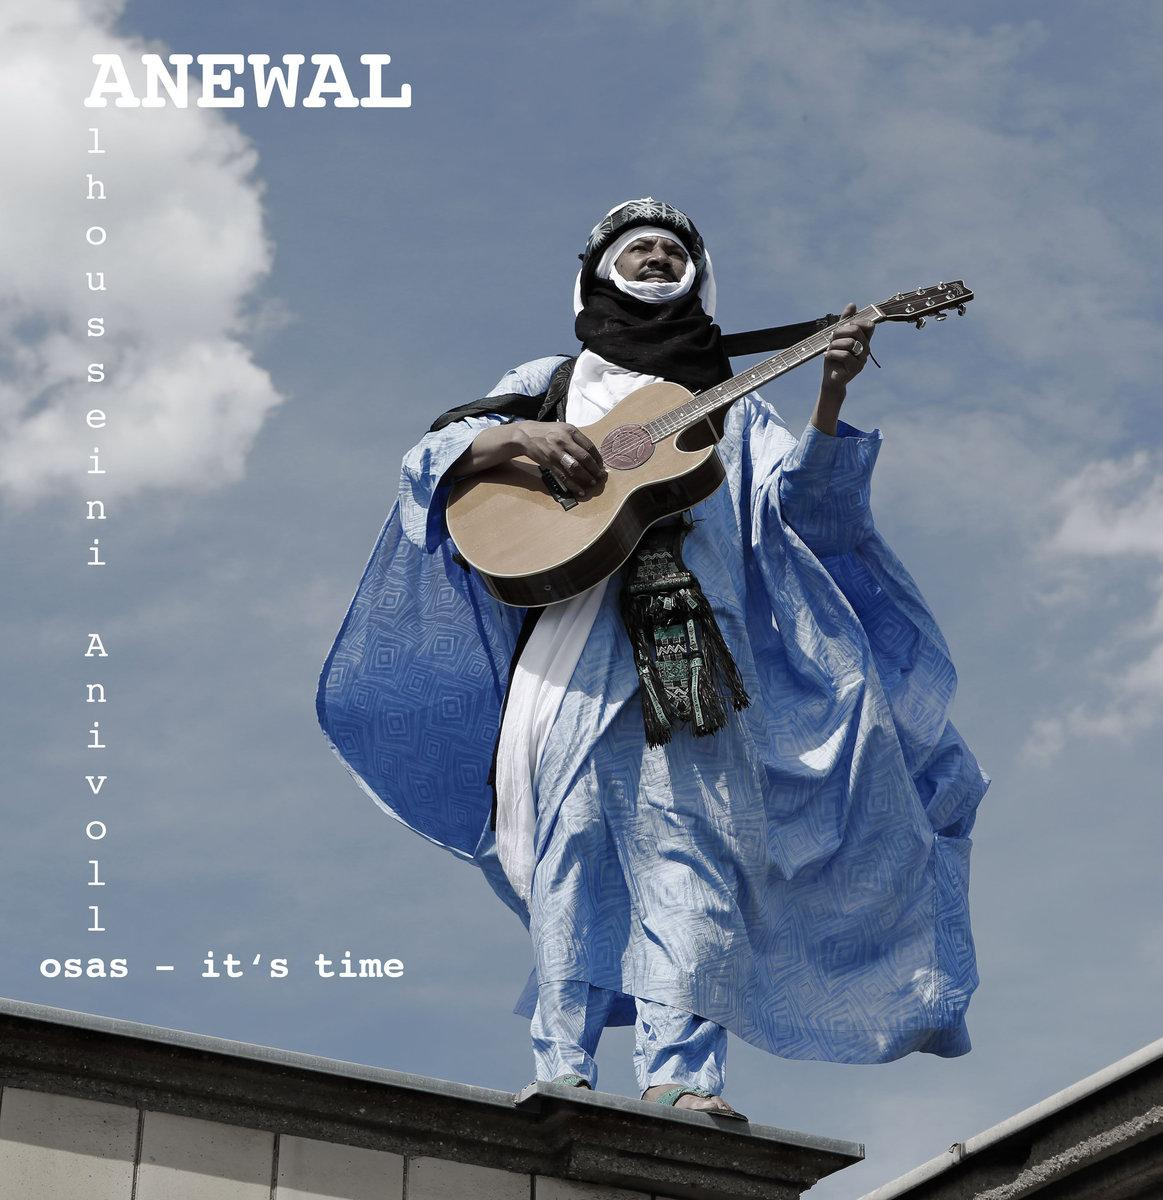 Image result for osas anewal